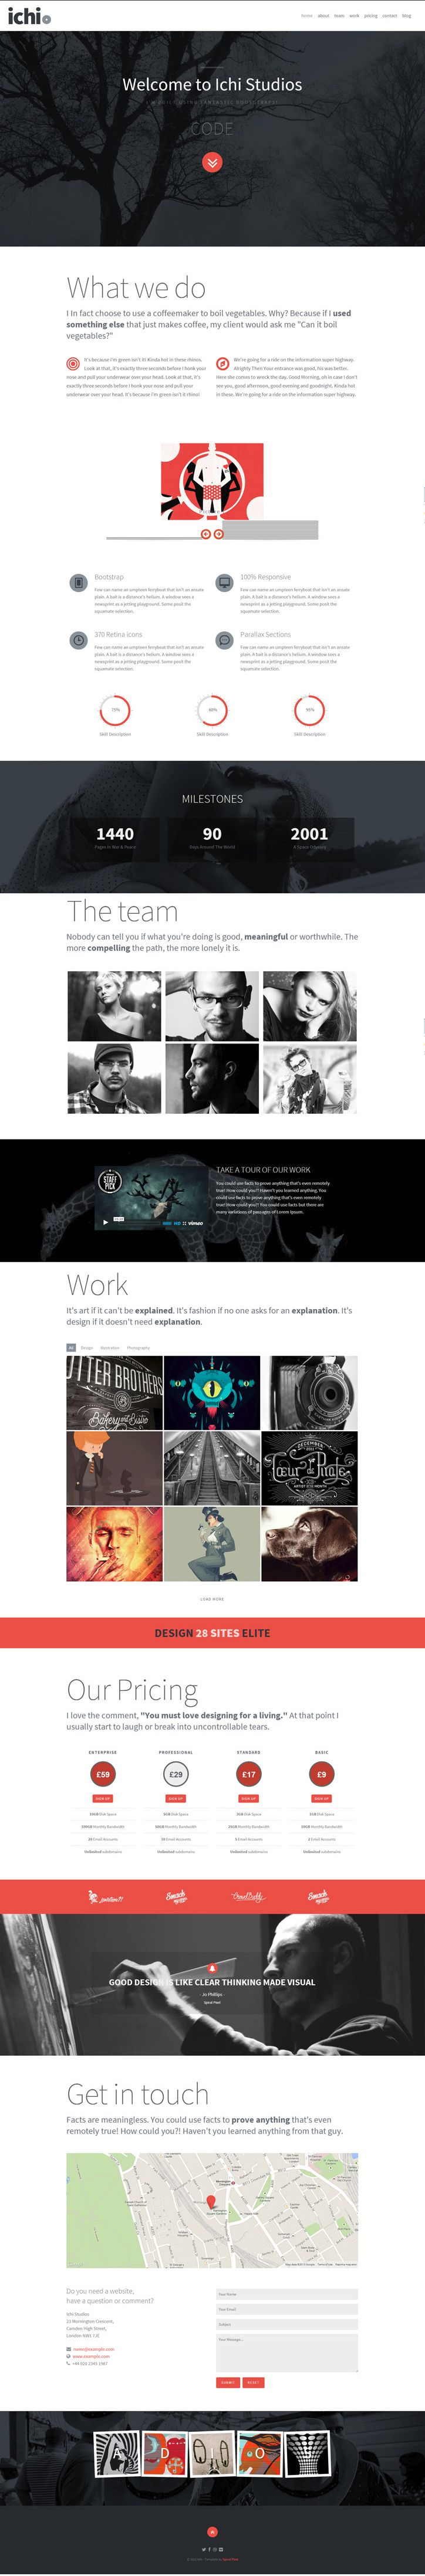 Ichi - One Page Parallax Retina Html5 Template http://www.behance.net/gallery/Ichi-One-Page-Parallax-Retina-Html5-Template/12616135?utm_source=Triggermail&utm_medium=email&utm_campaign=Net%20Project%20Published